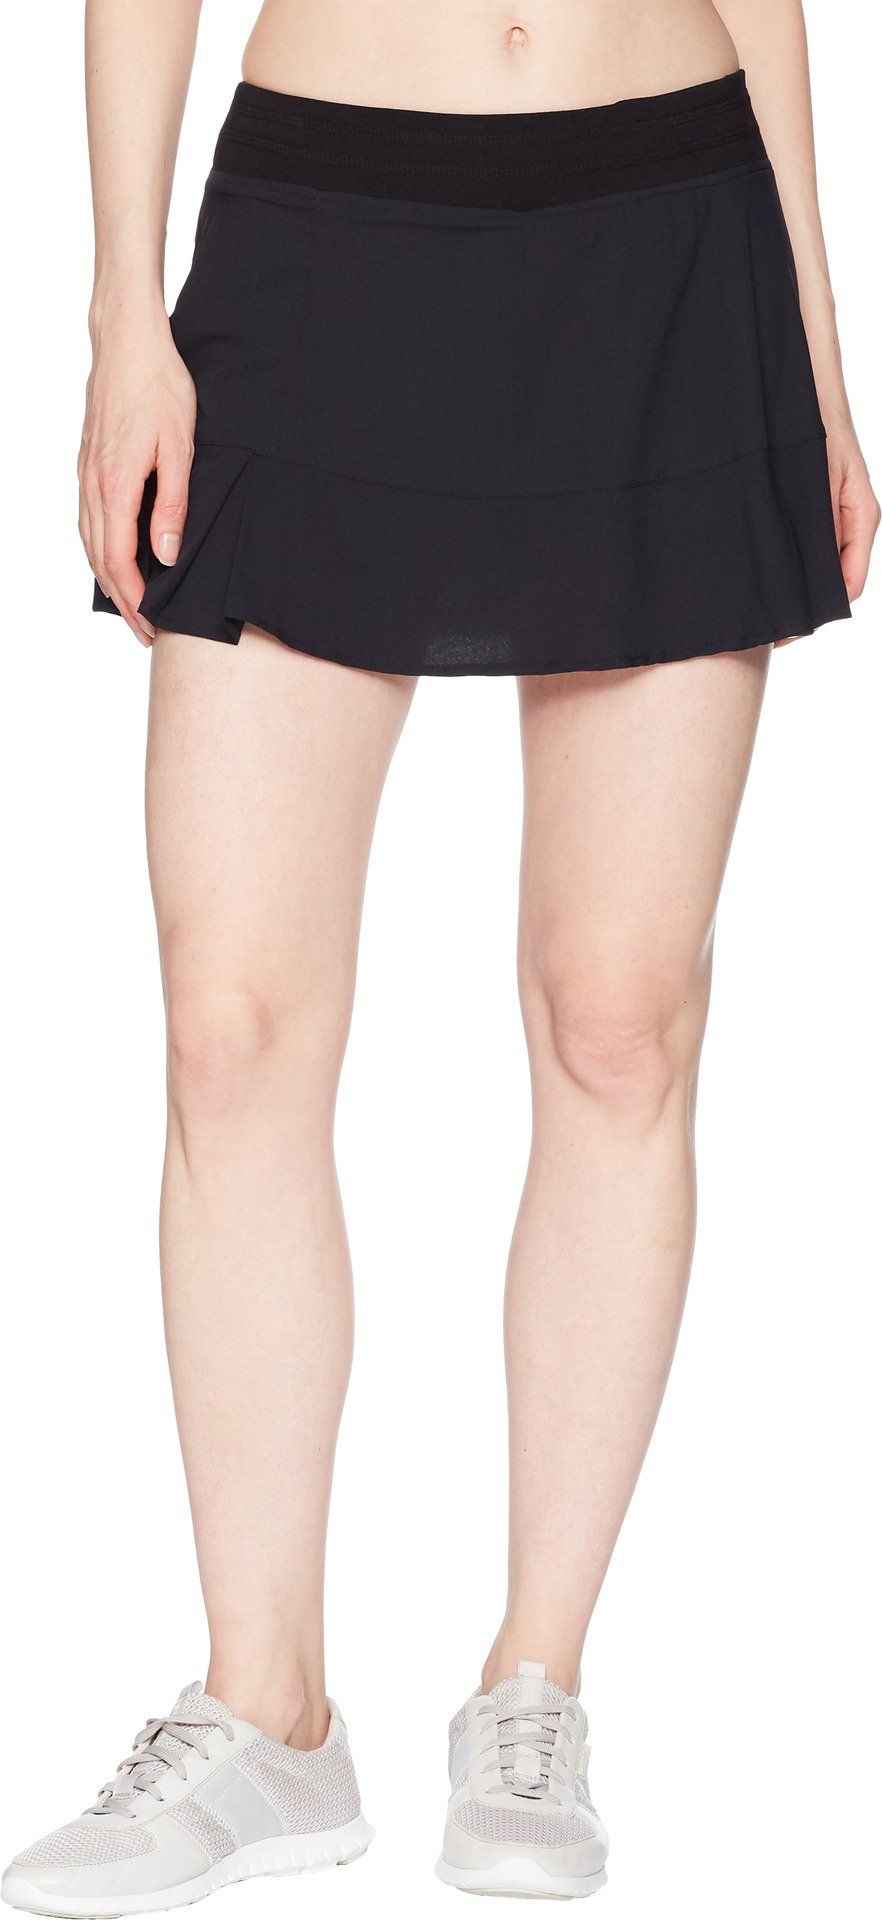 tasc Performance Rhythm Skirt, Black, Large by tasc Performance